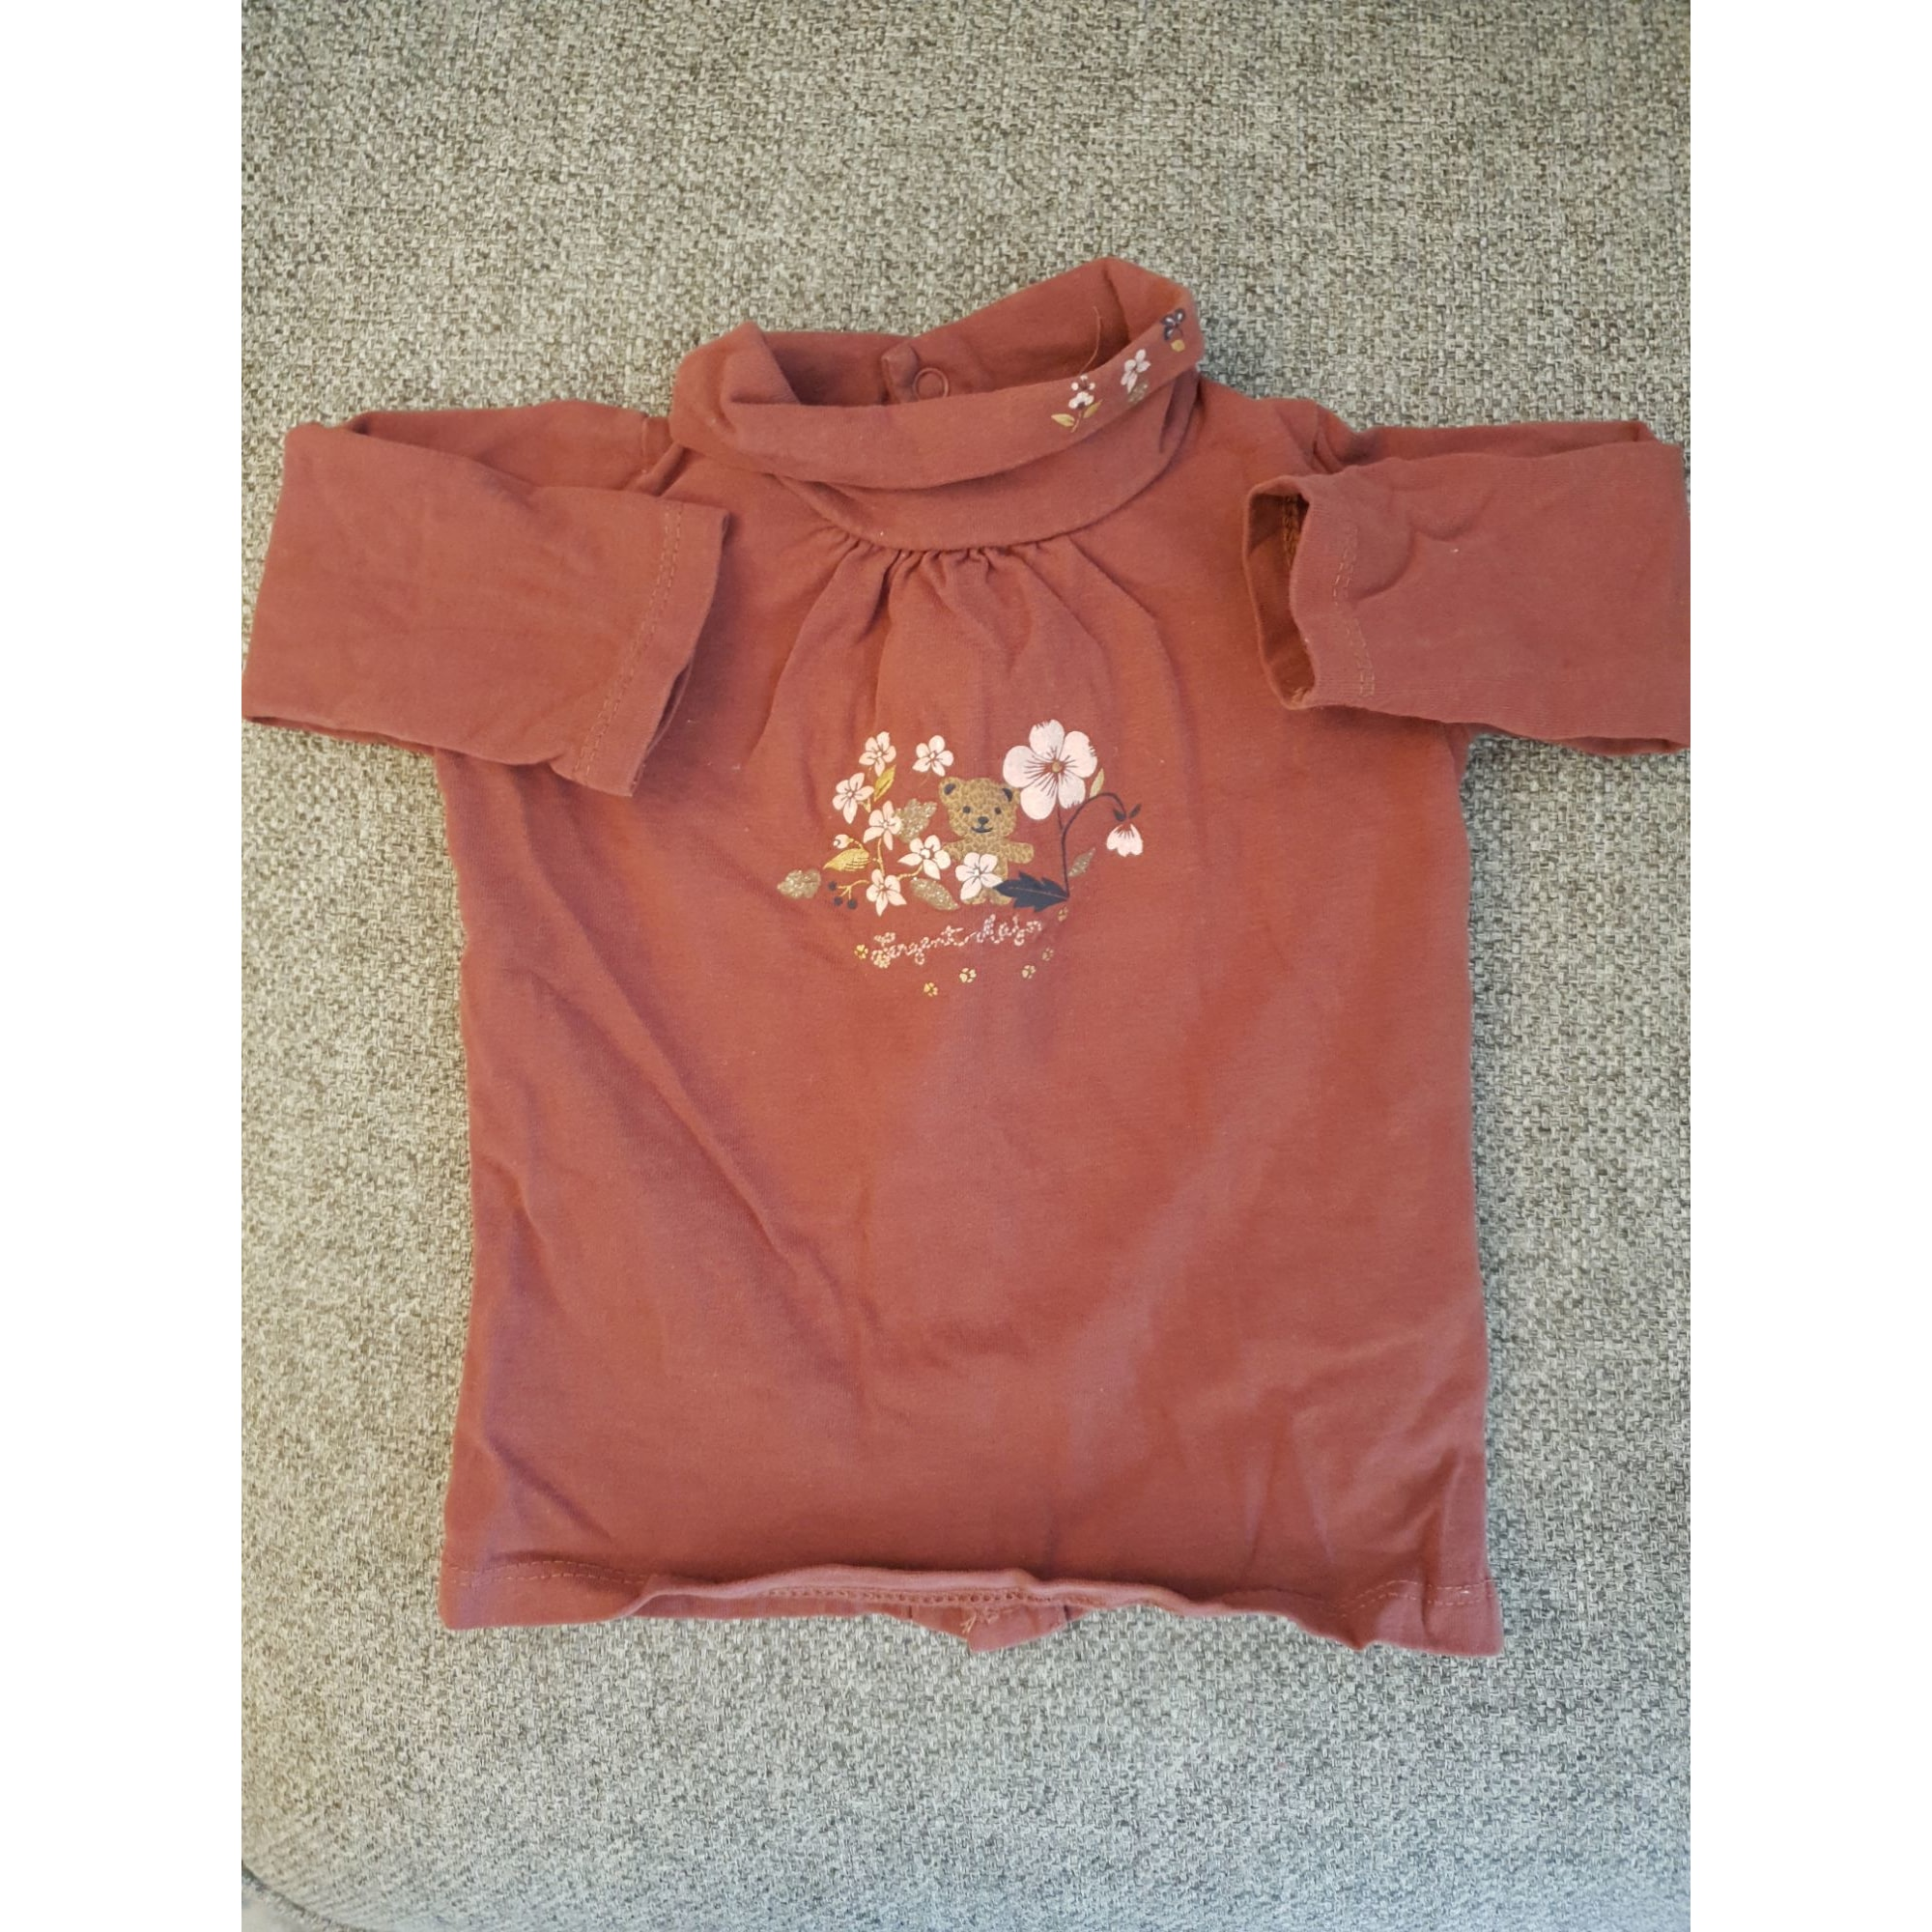 Top, tee shirt SERGENT MAJOR Rouge, bordeaux